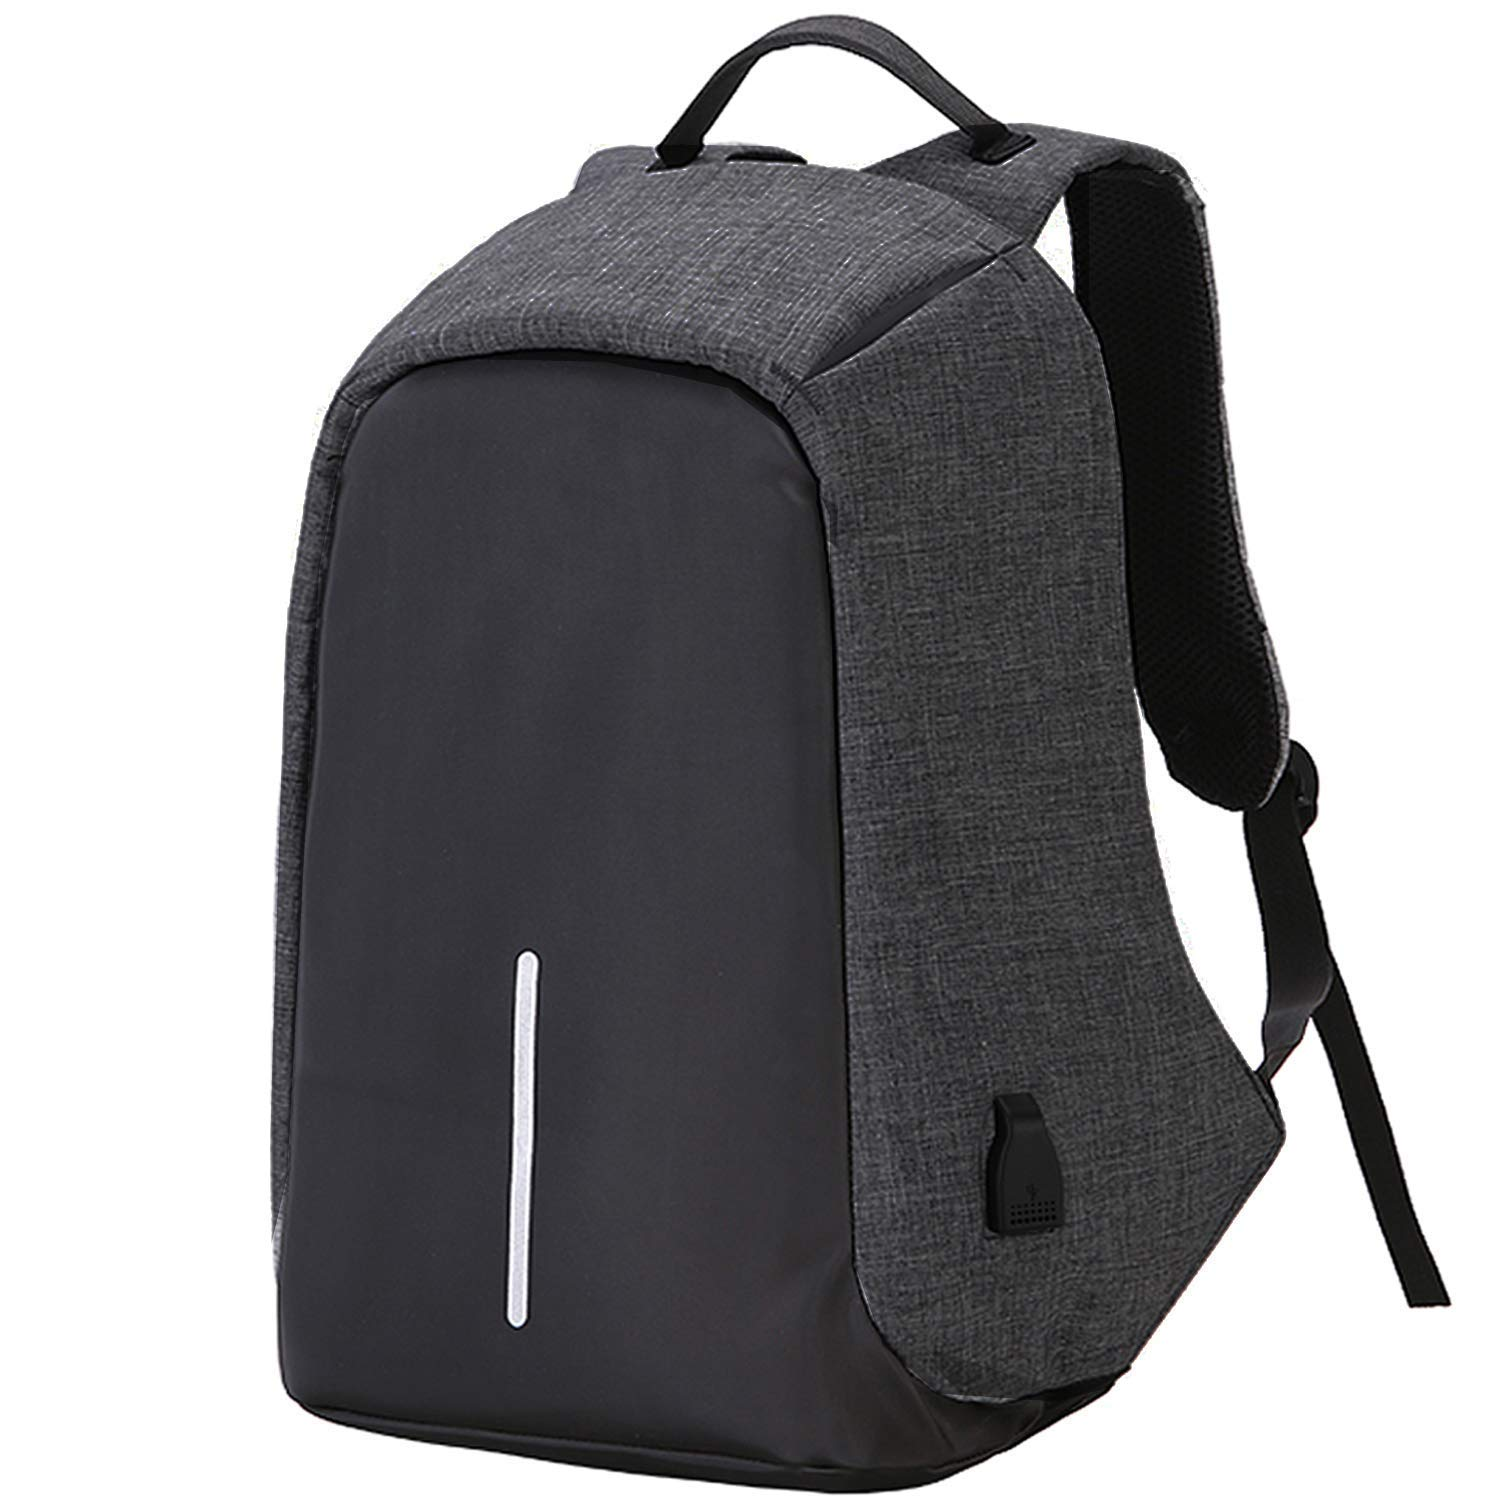 27c923de32 Andride® Anti Theft Backpack Waterproof Business Laptop Bag with USB  Charging Port for 14 Inch Laptop